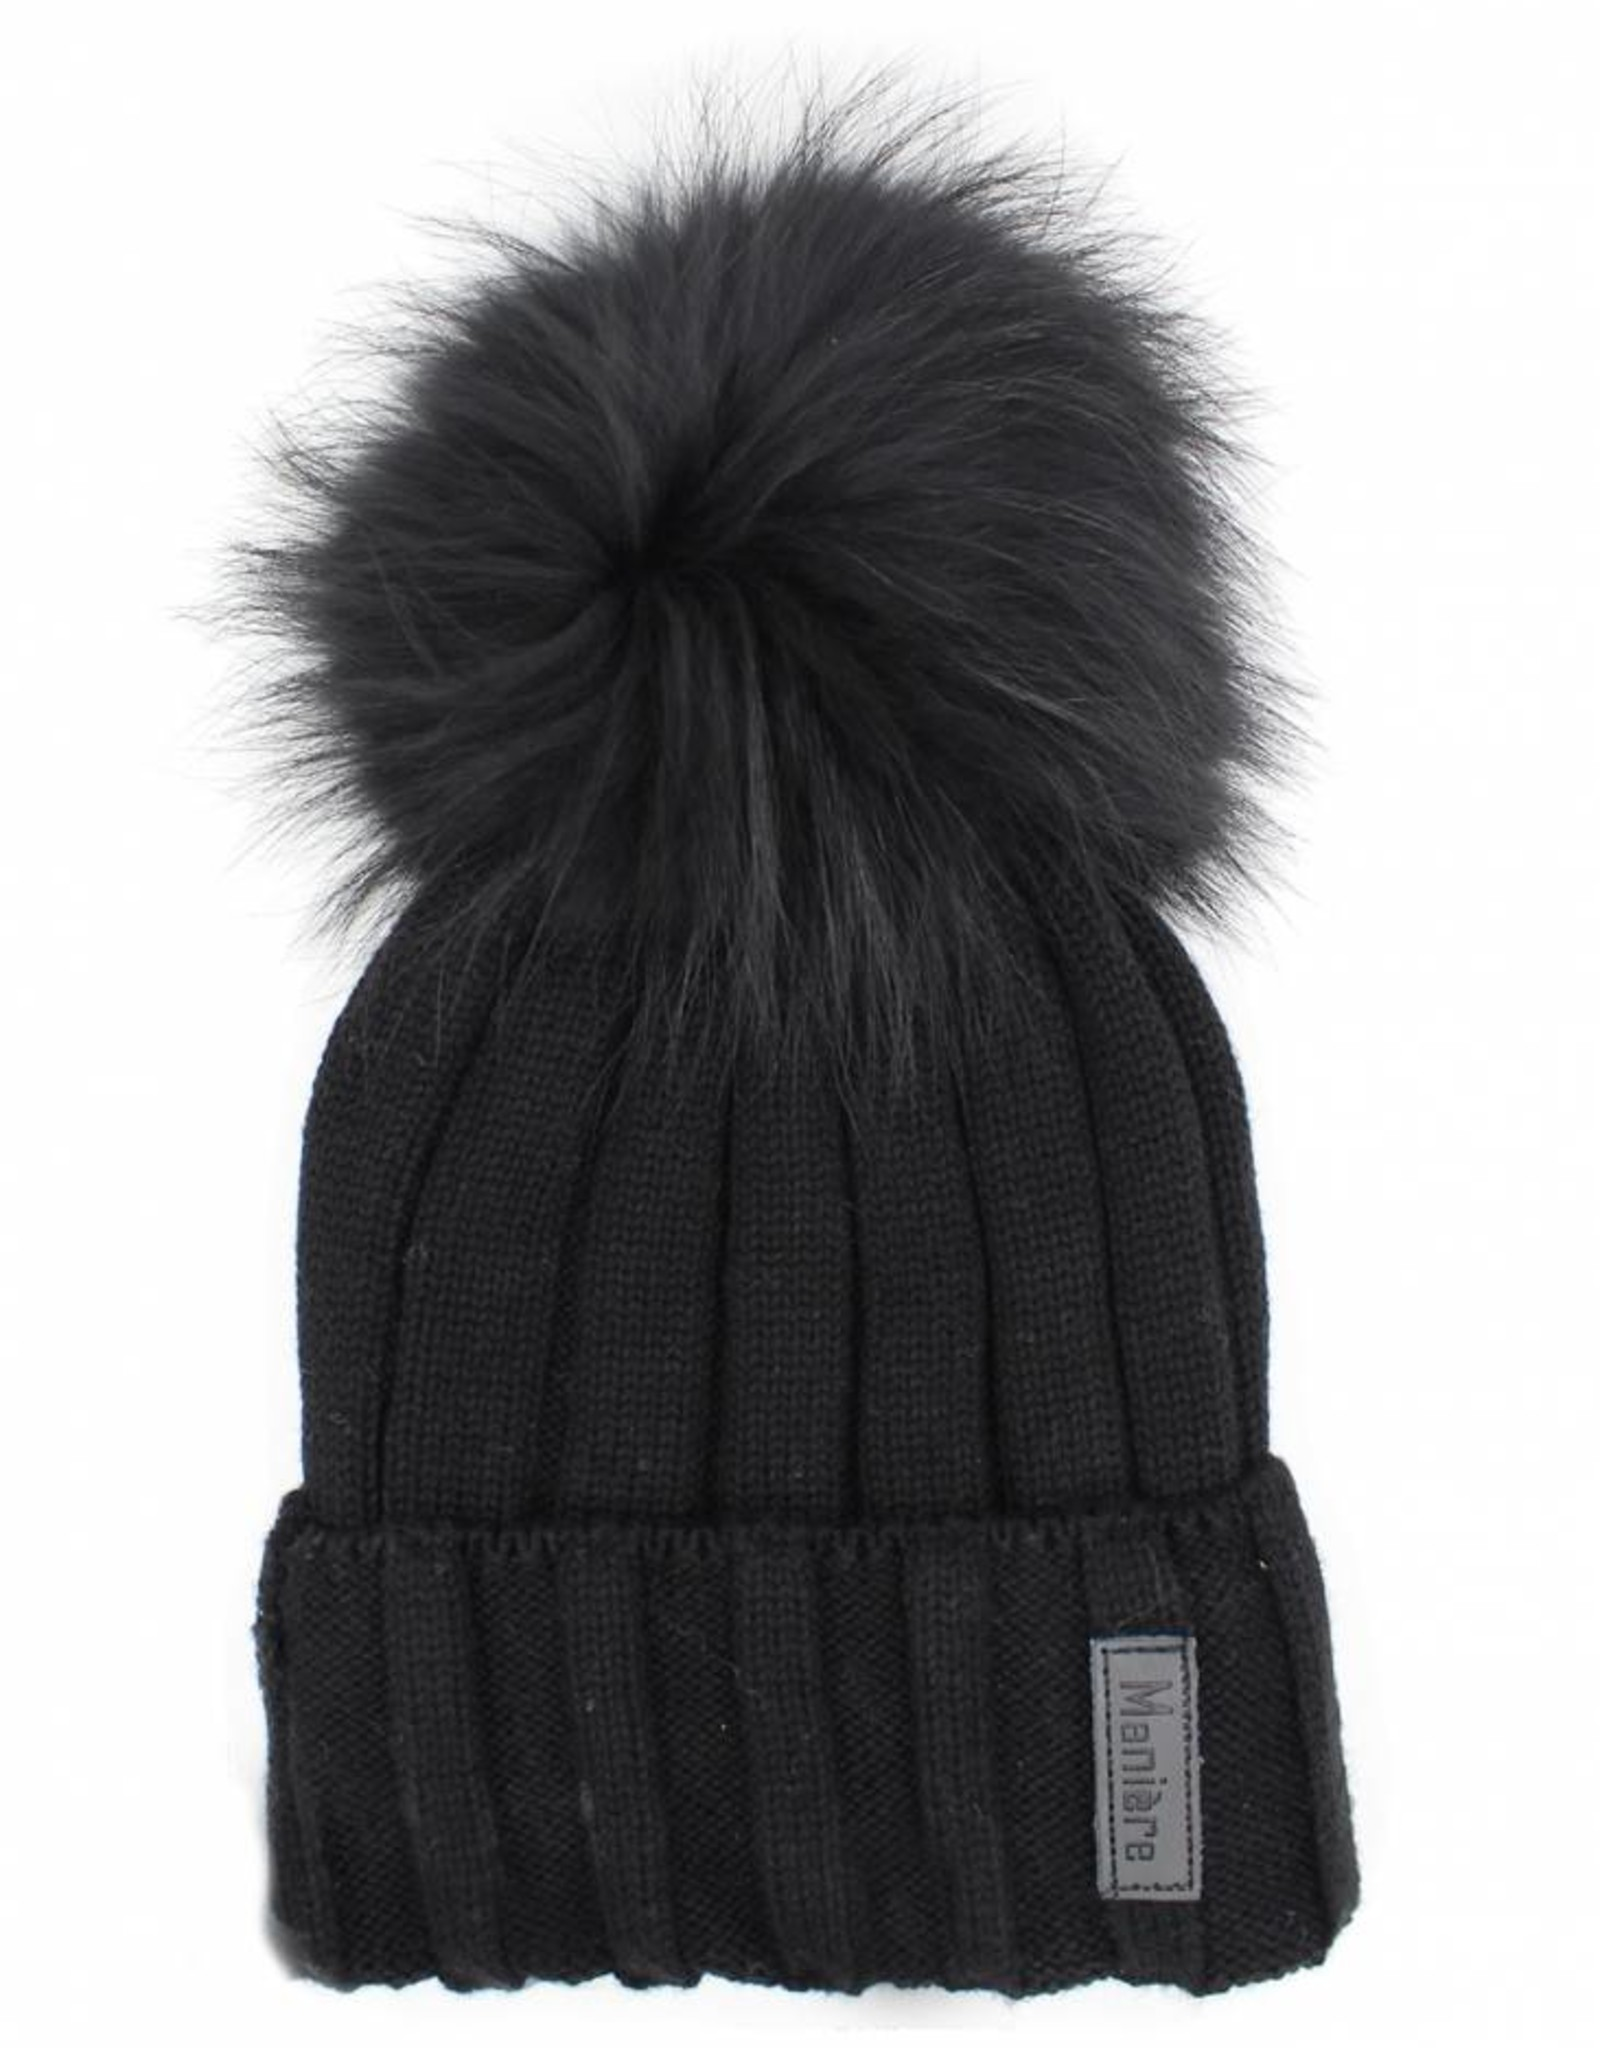 Maniere Maniere Adult Ribbed Merino Wool Knit Hat